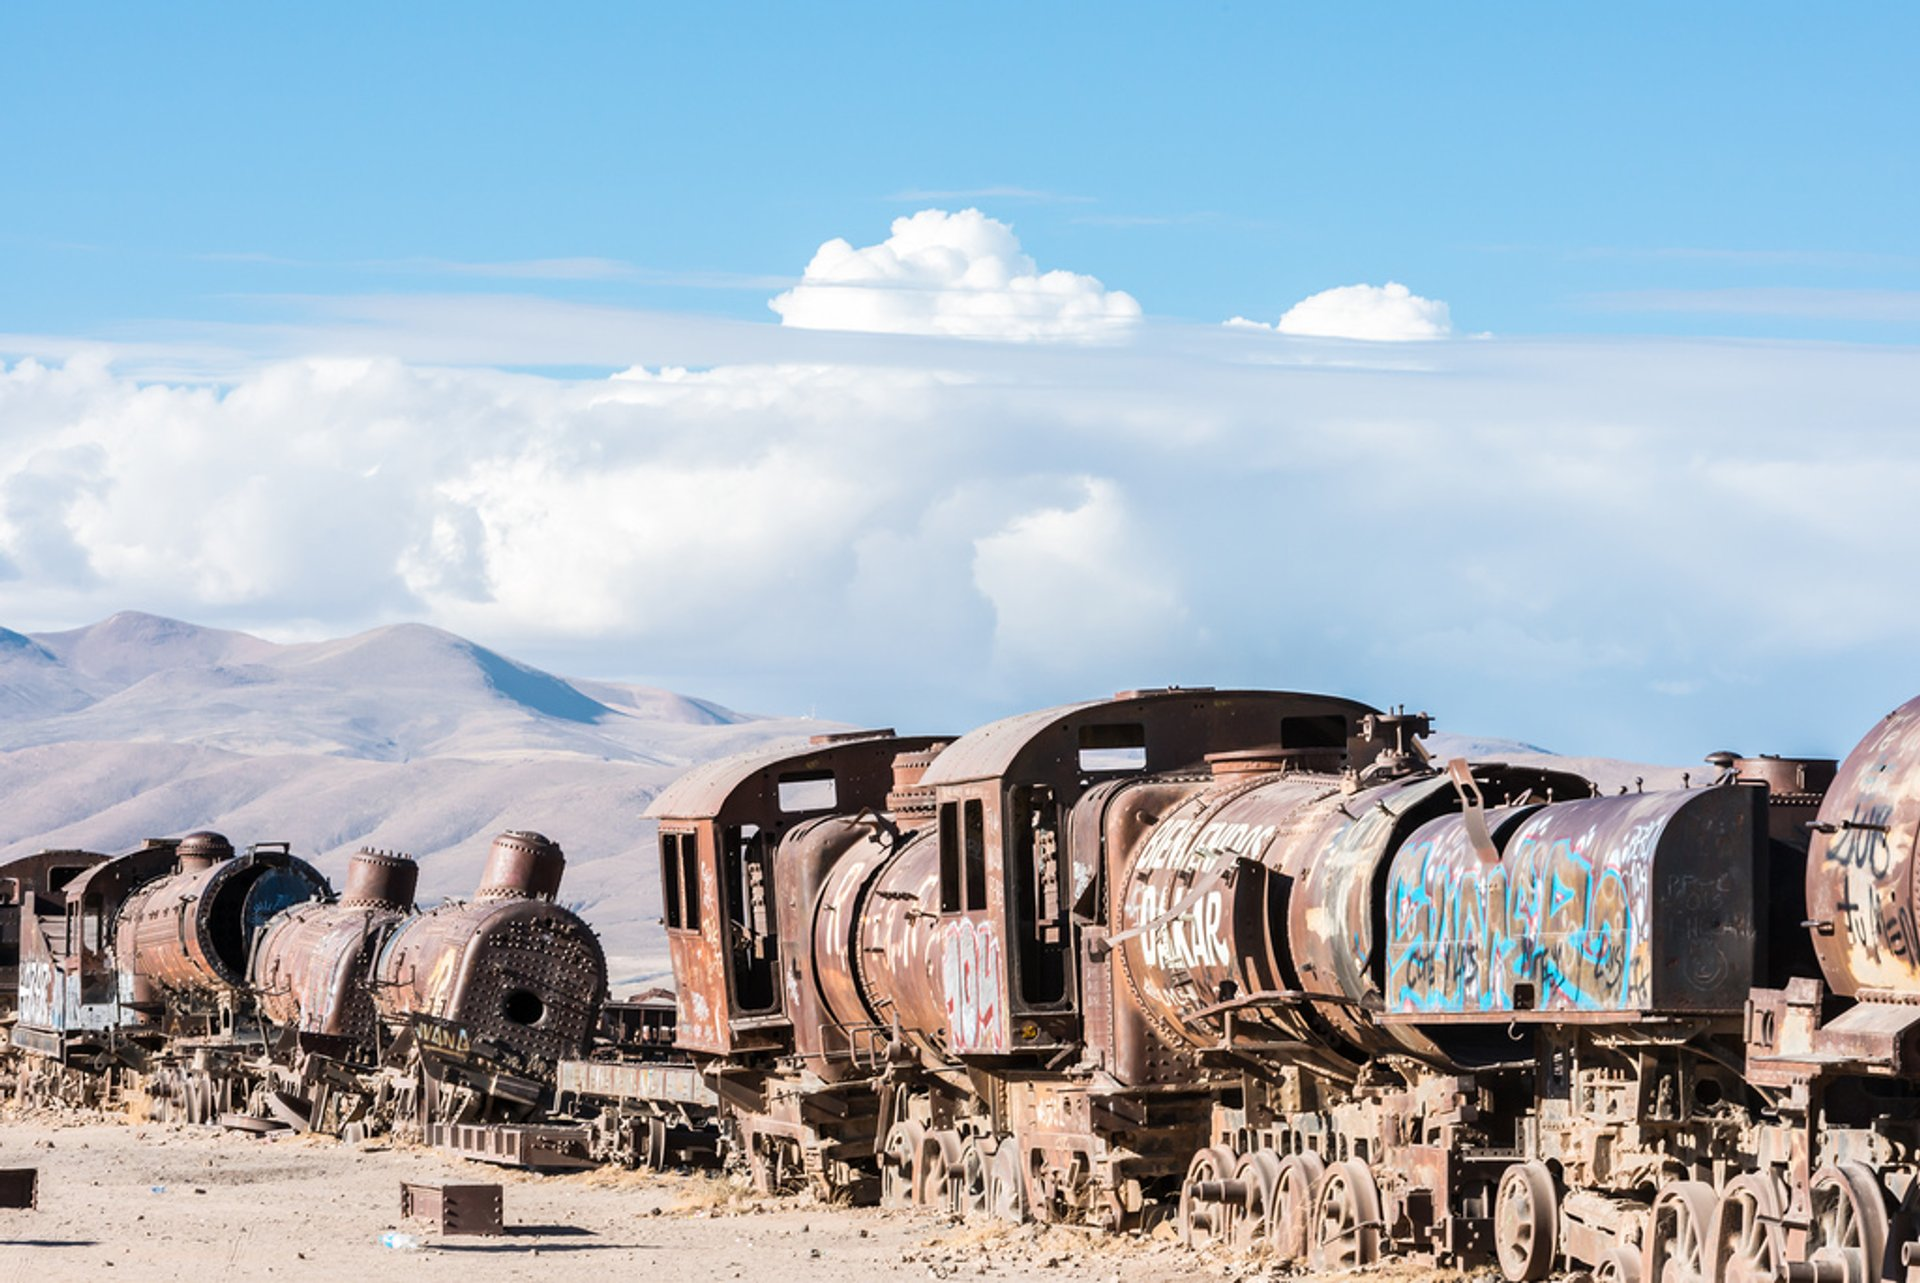 Train Cemetery in Bolivia 2020 - Best Time